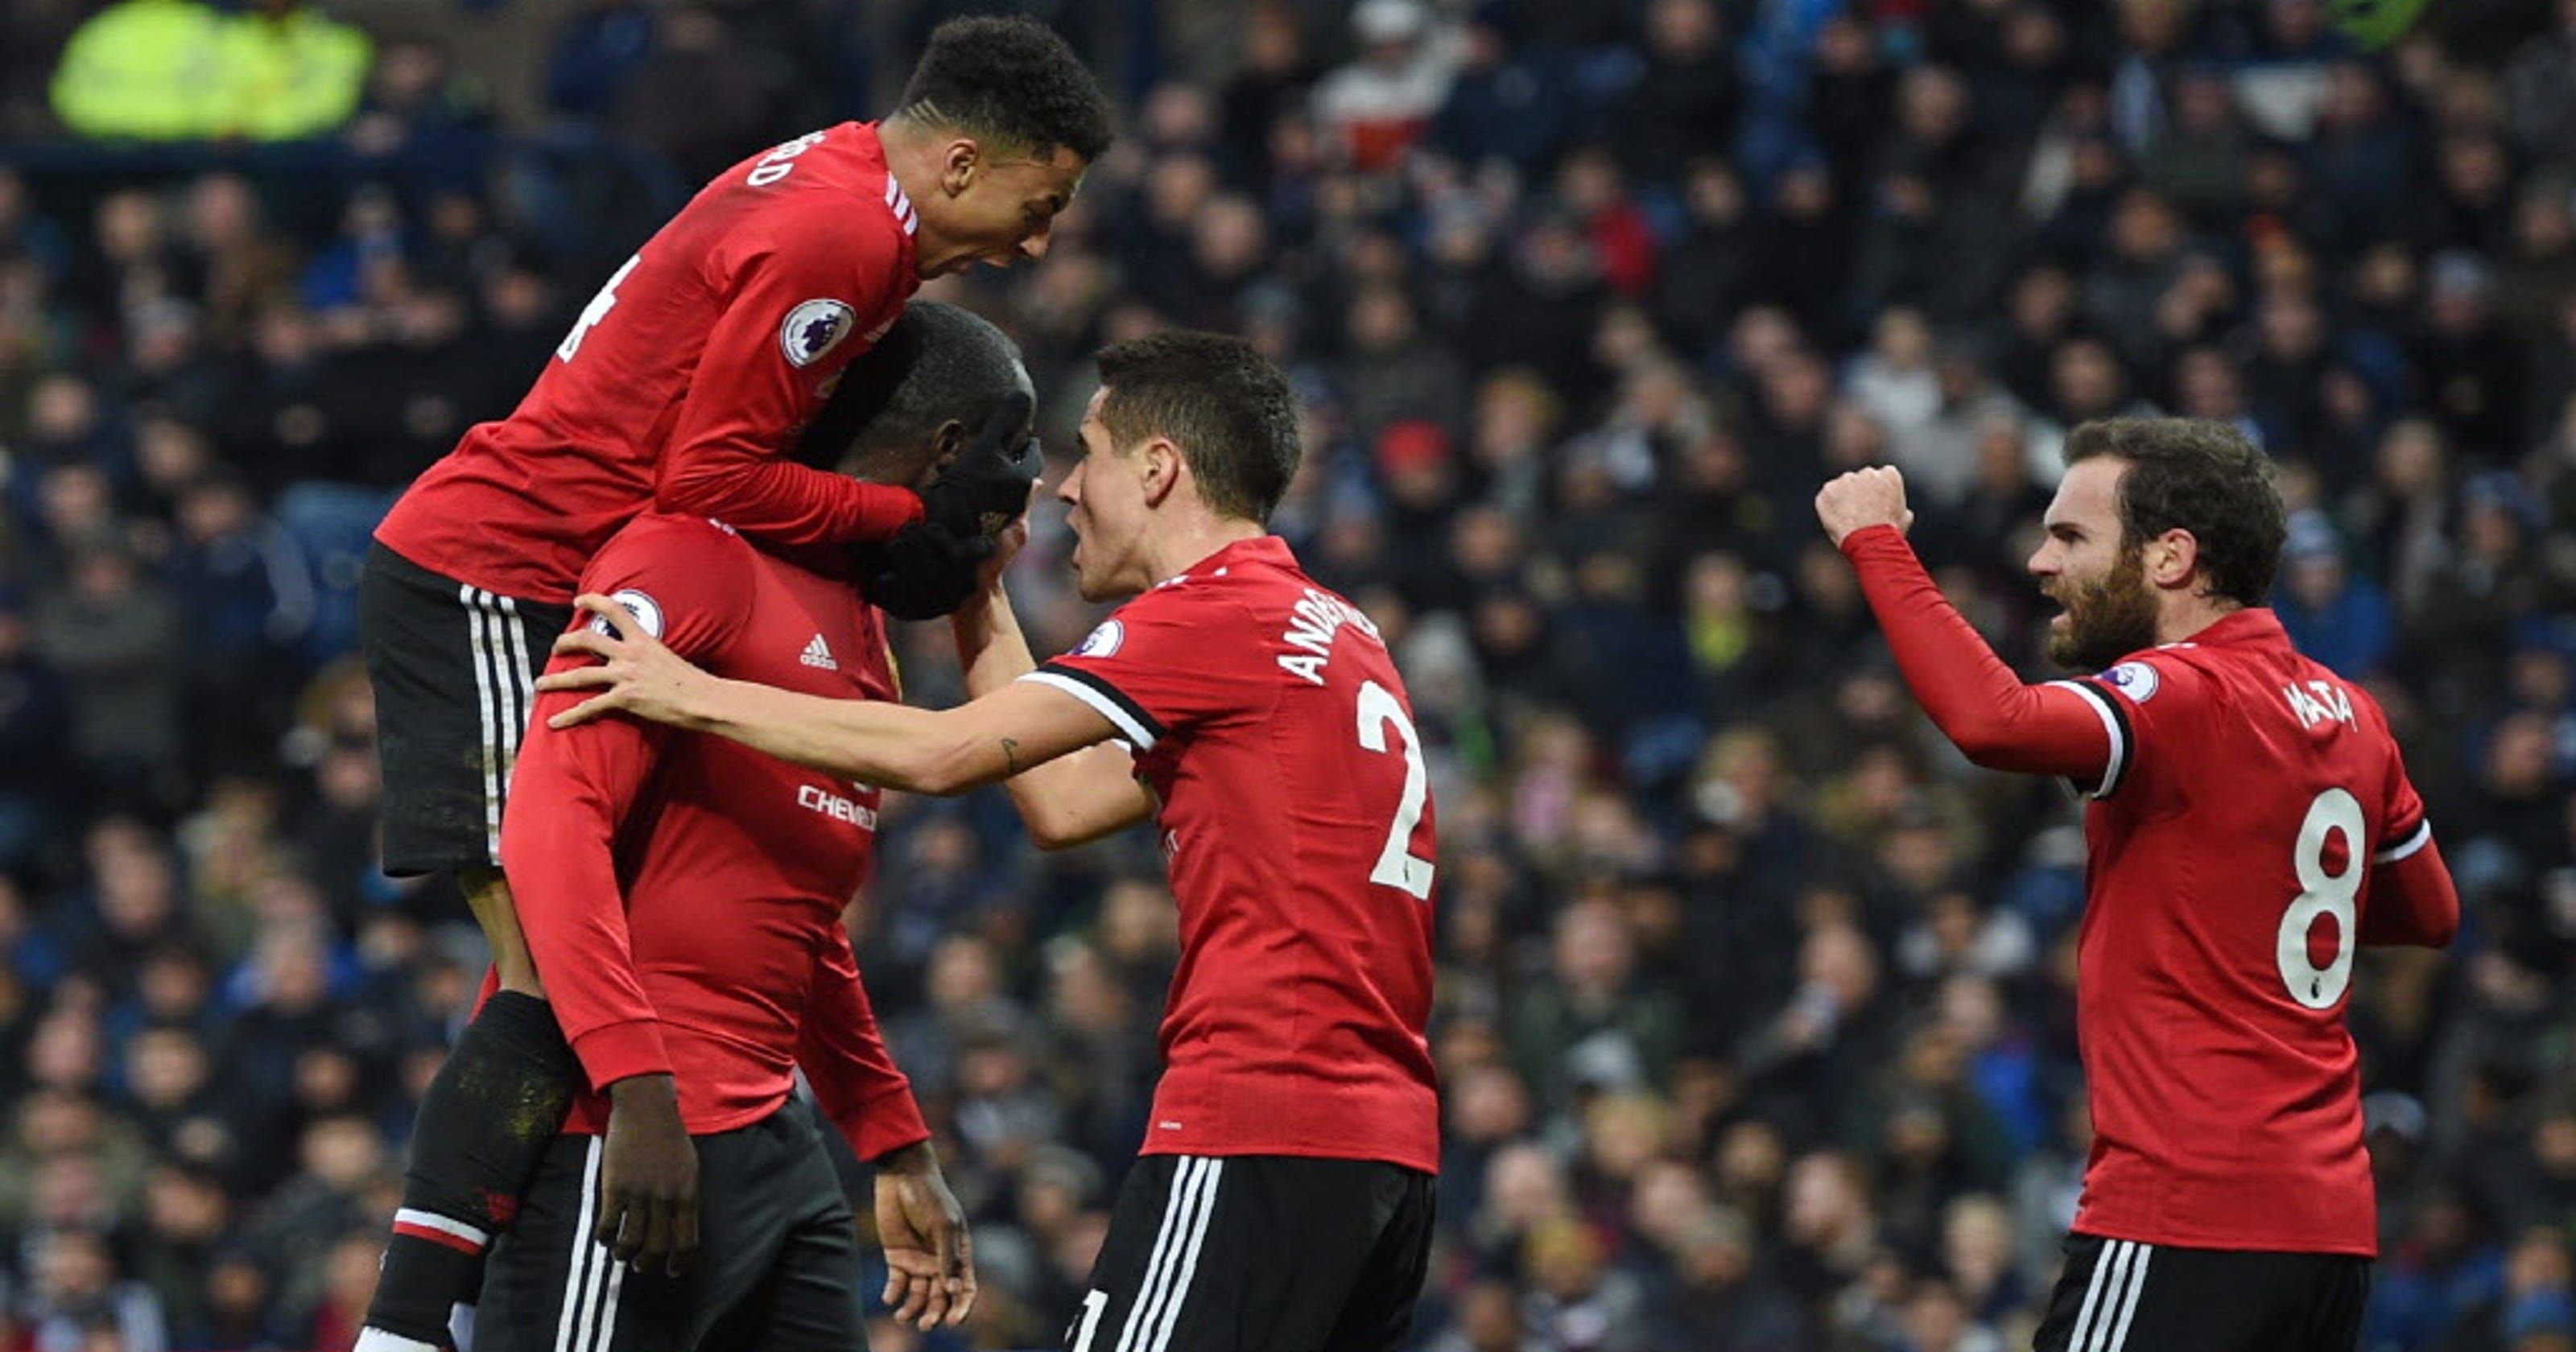 bea0288d1 Romelu Lukaku refuses to celebrate after goal in Manchester United win